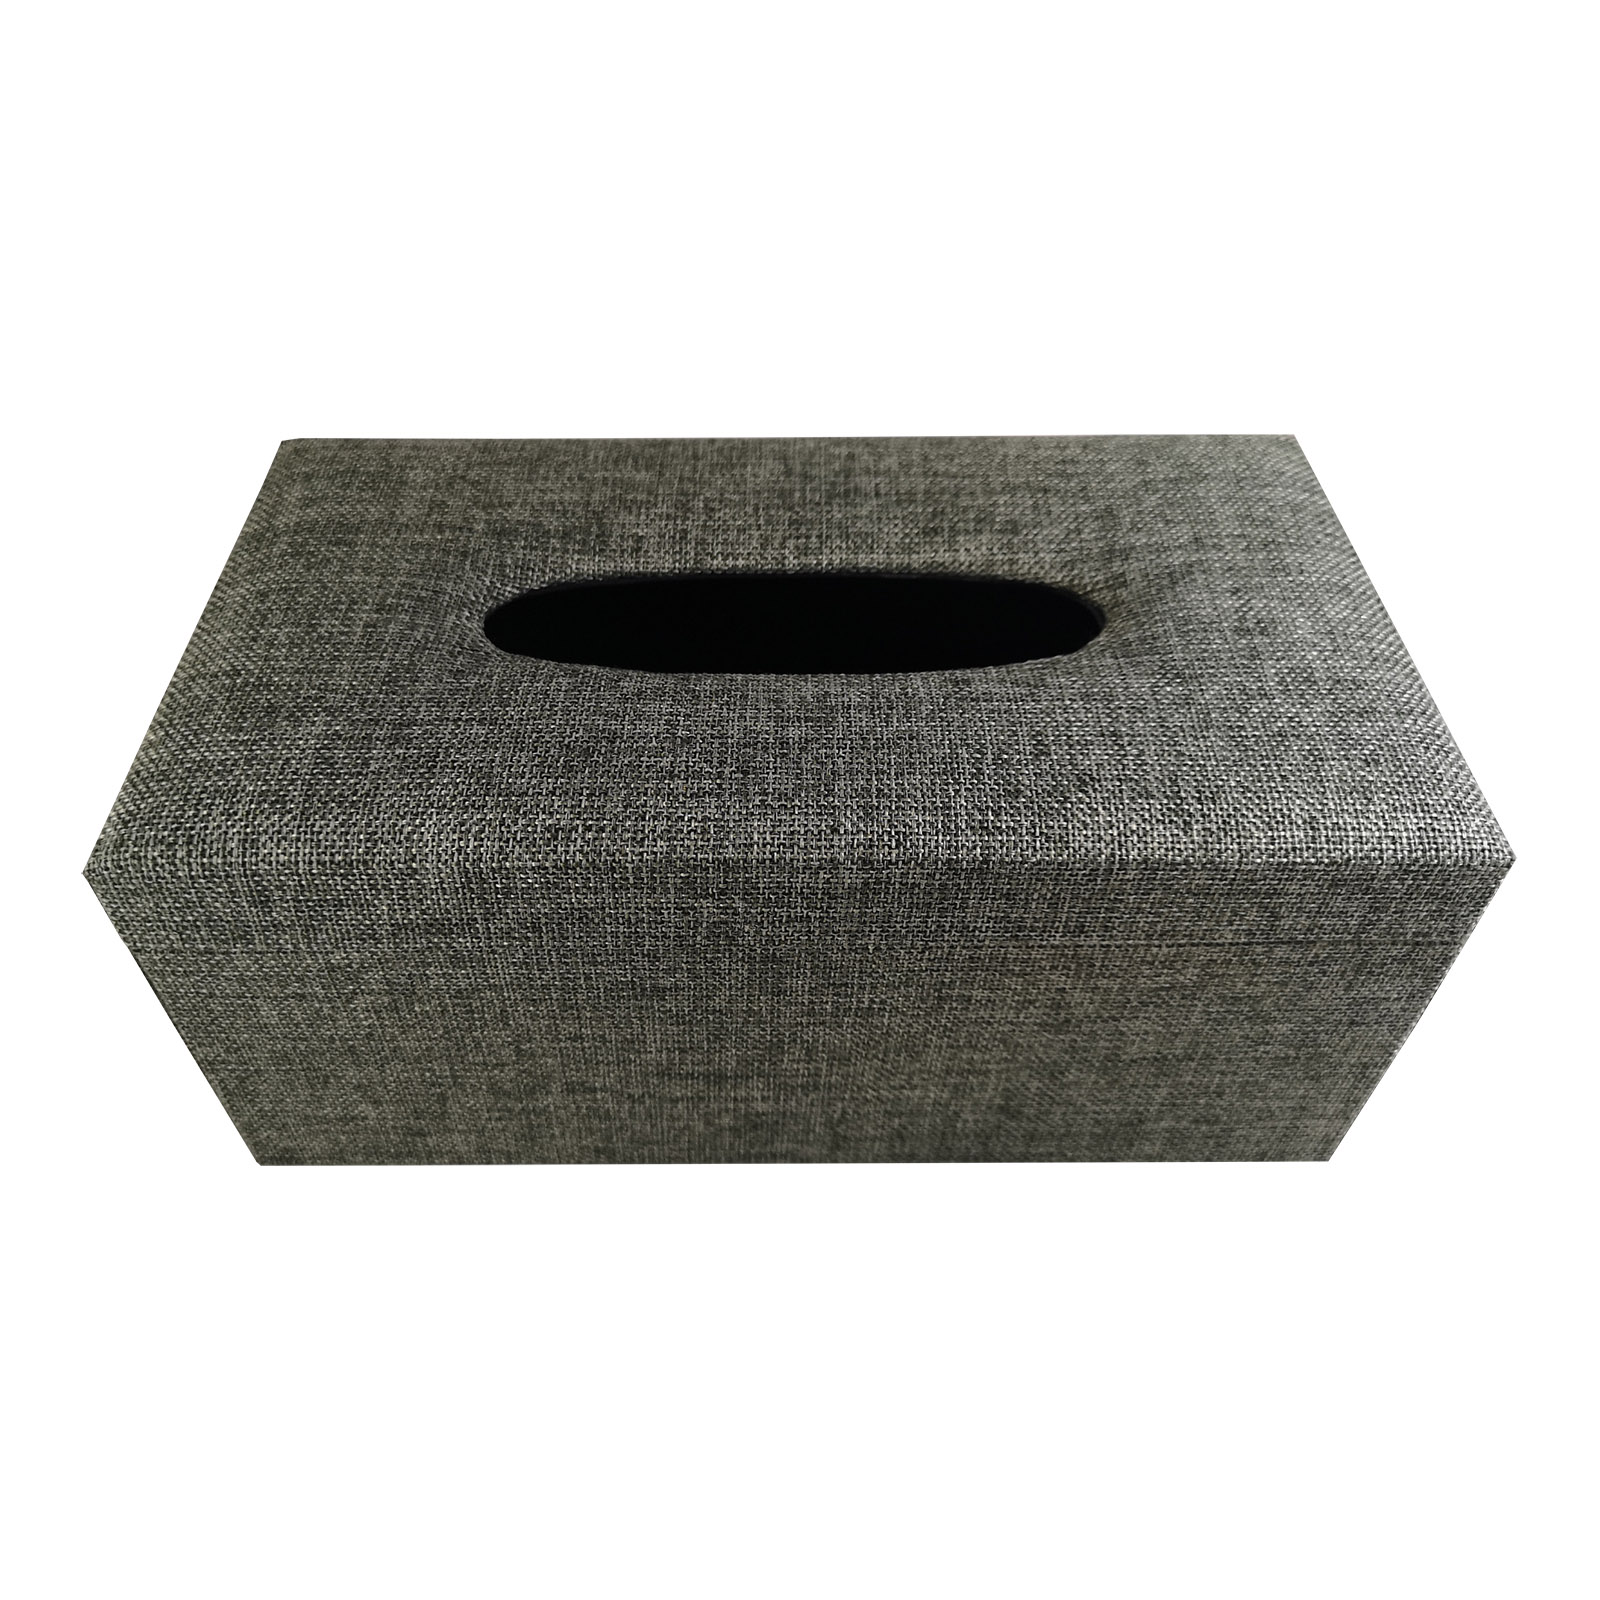 Grey linen tissue box